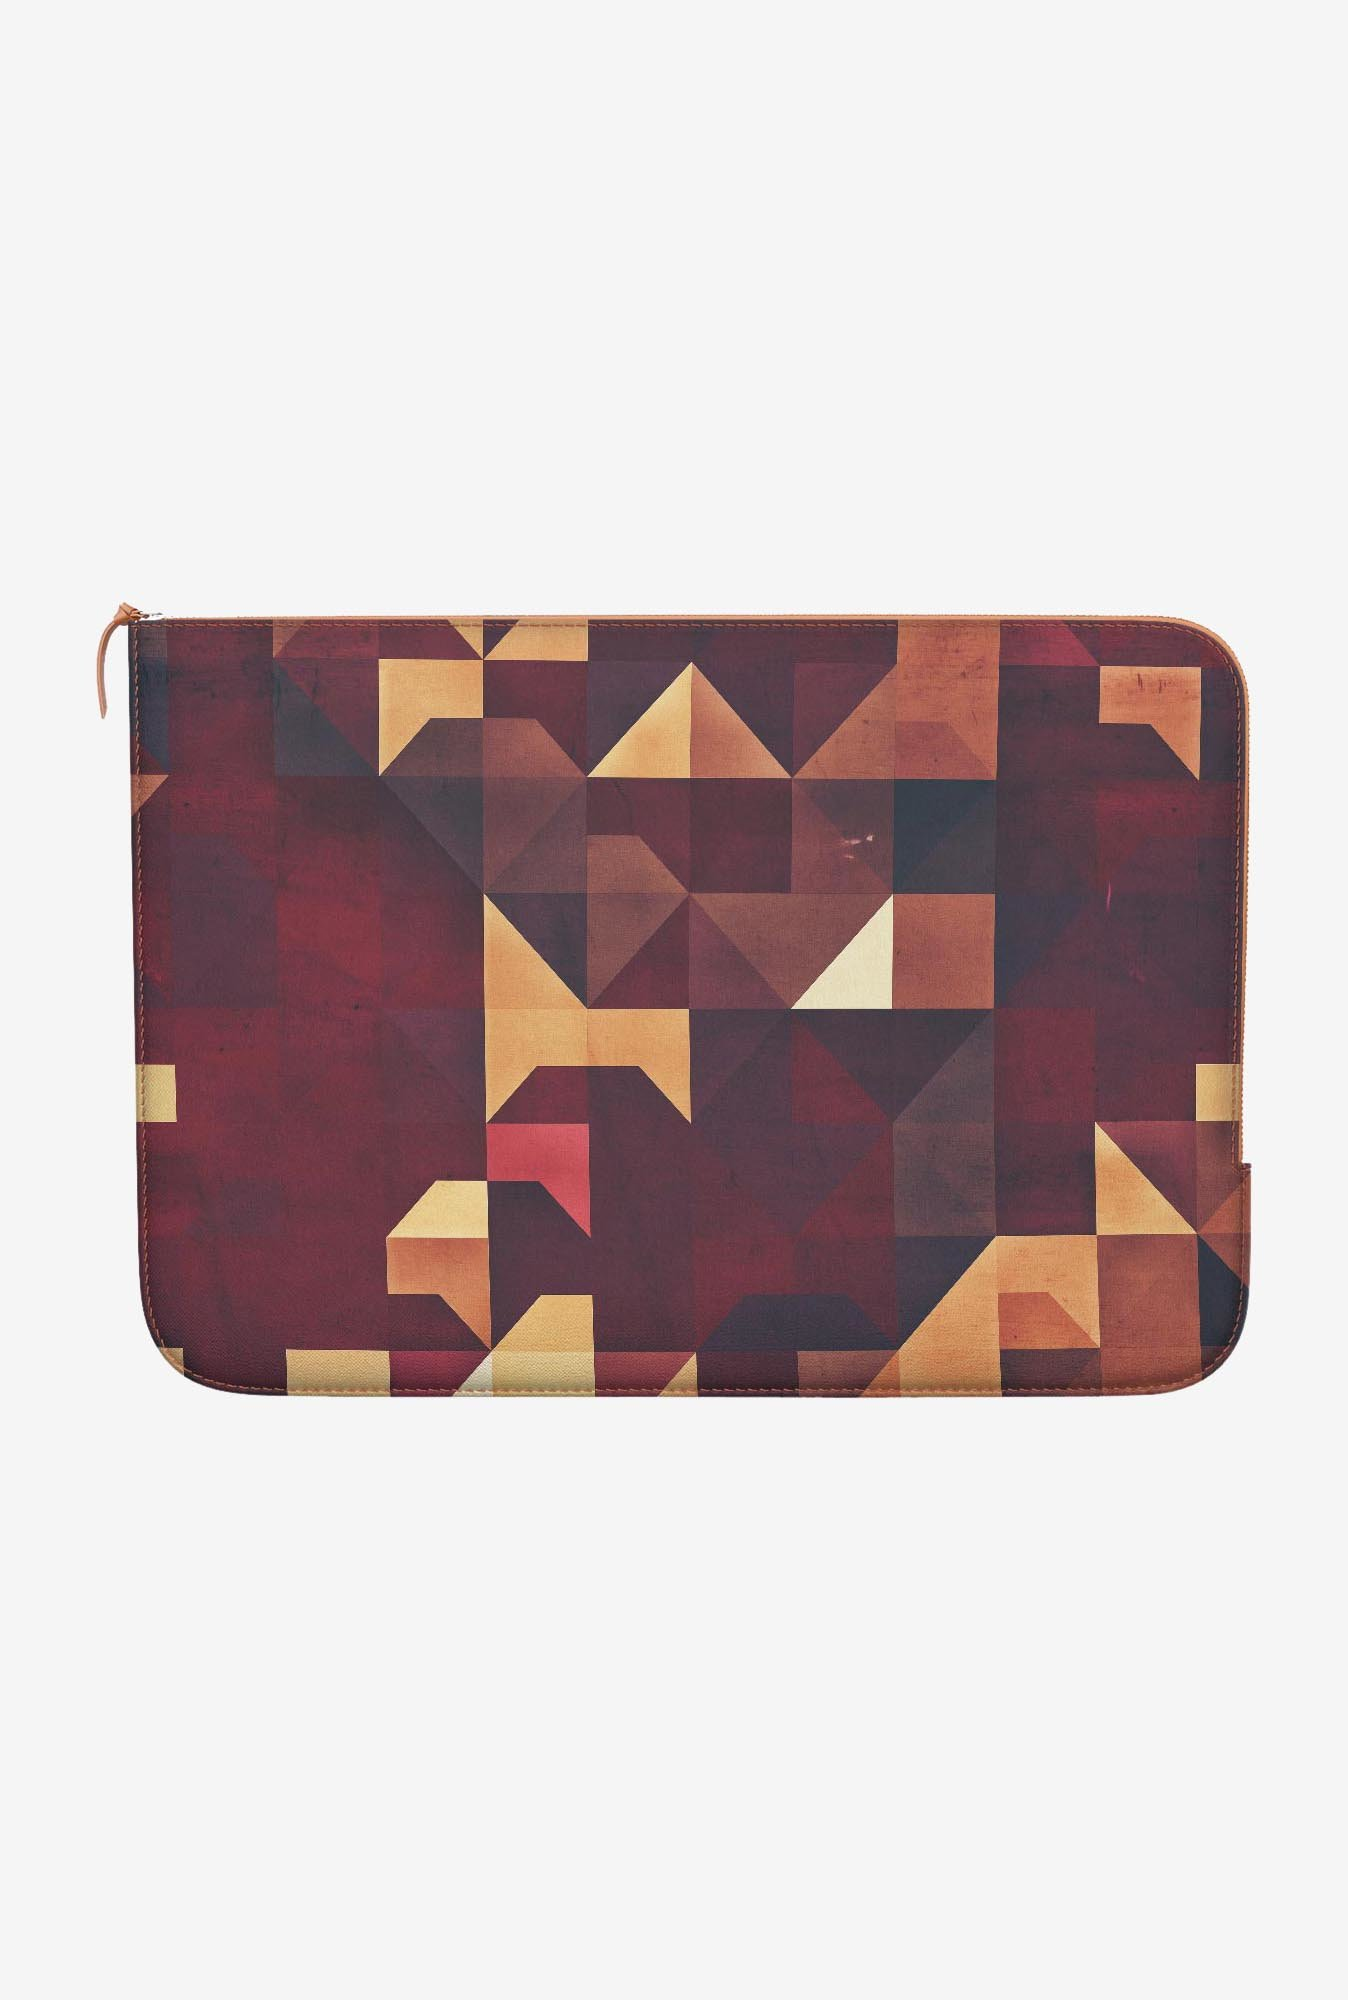 "DailyObjects Smykyngg Rwwmm Macbook Air 11"" Zippered Sleeve"